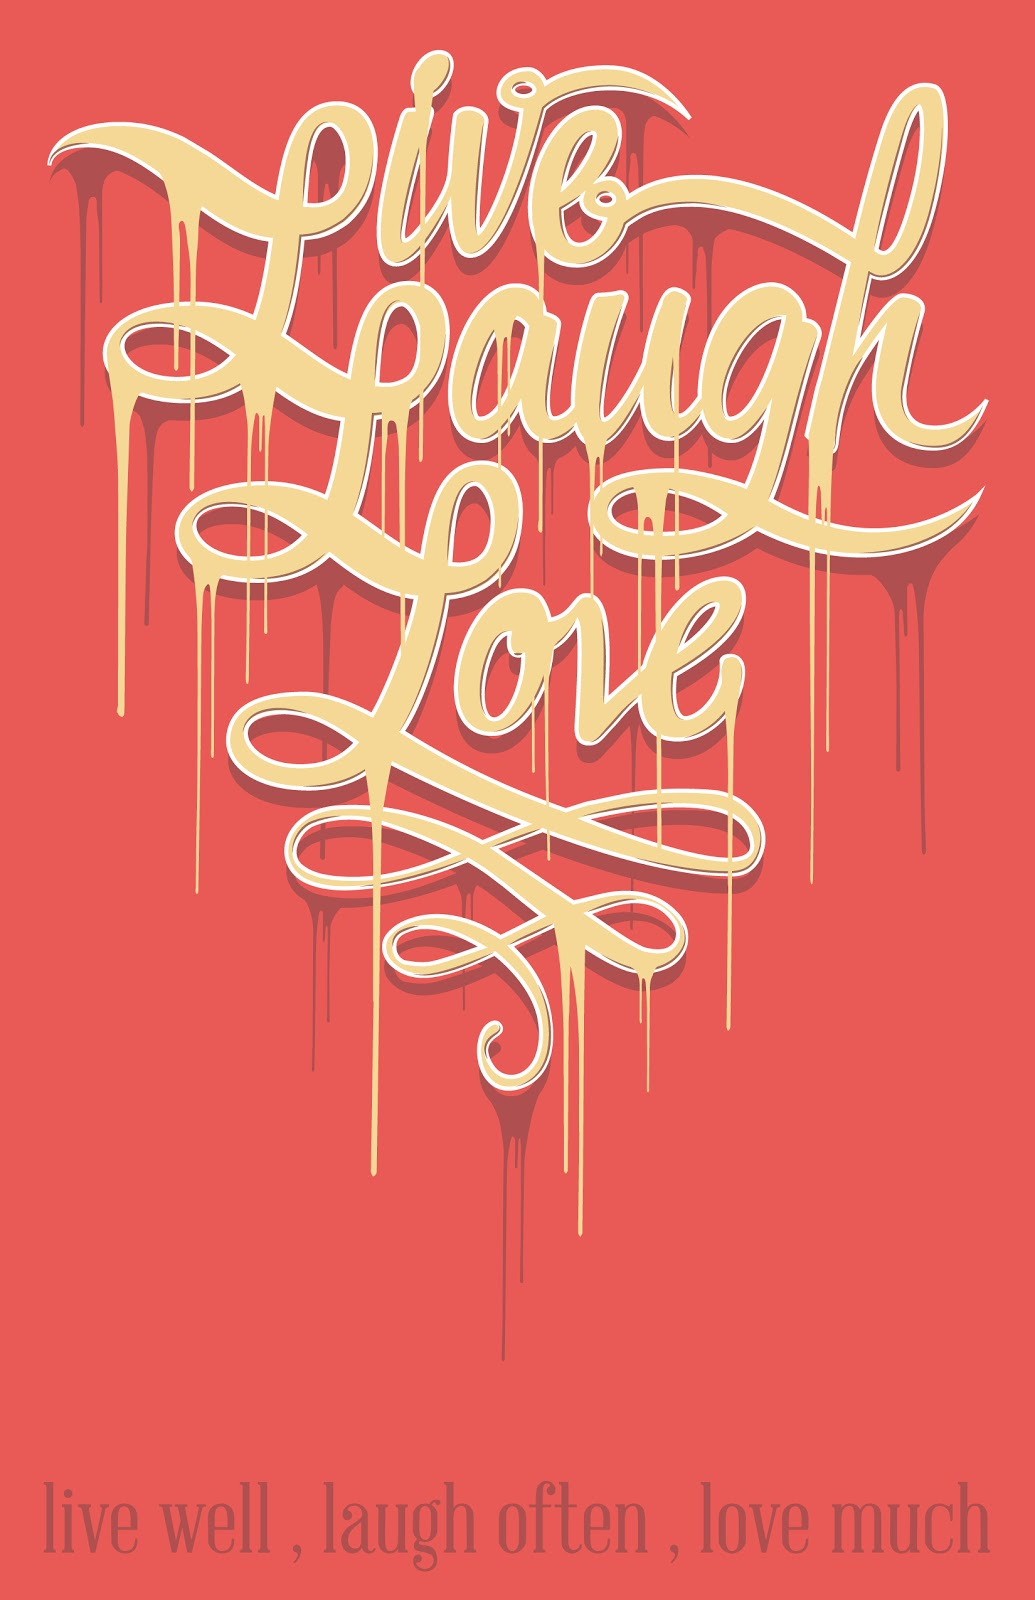 nam trandang portfolio live laugh love typography. Black Bedroom Furniture Sets. Home Design Ideas